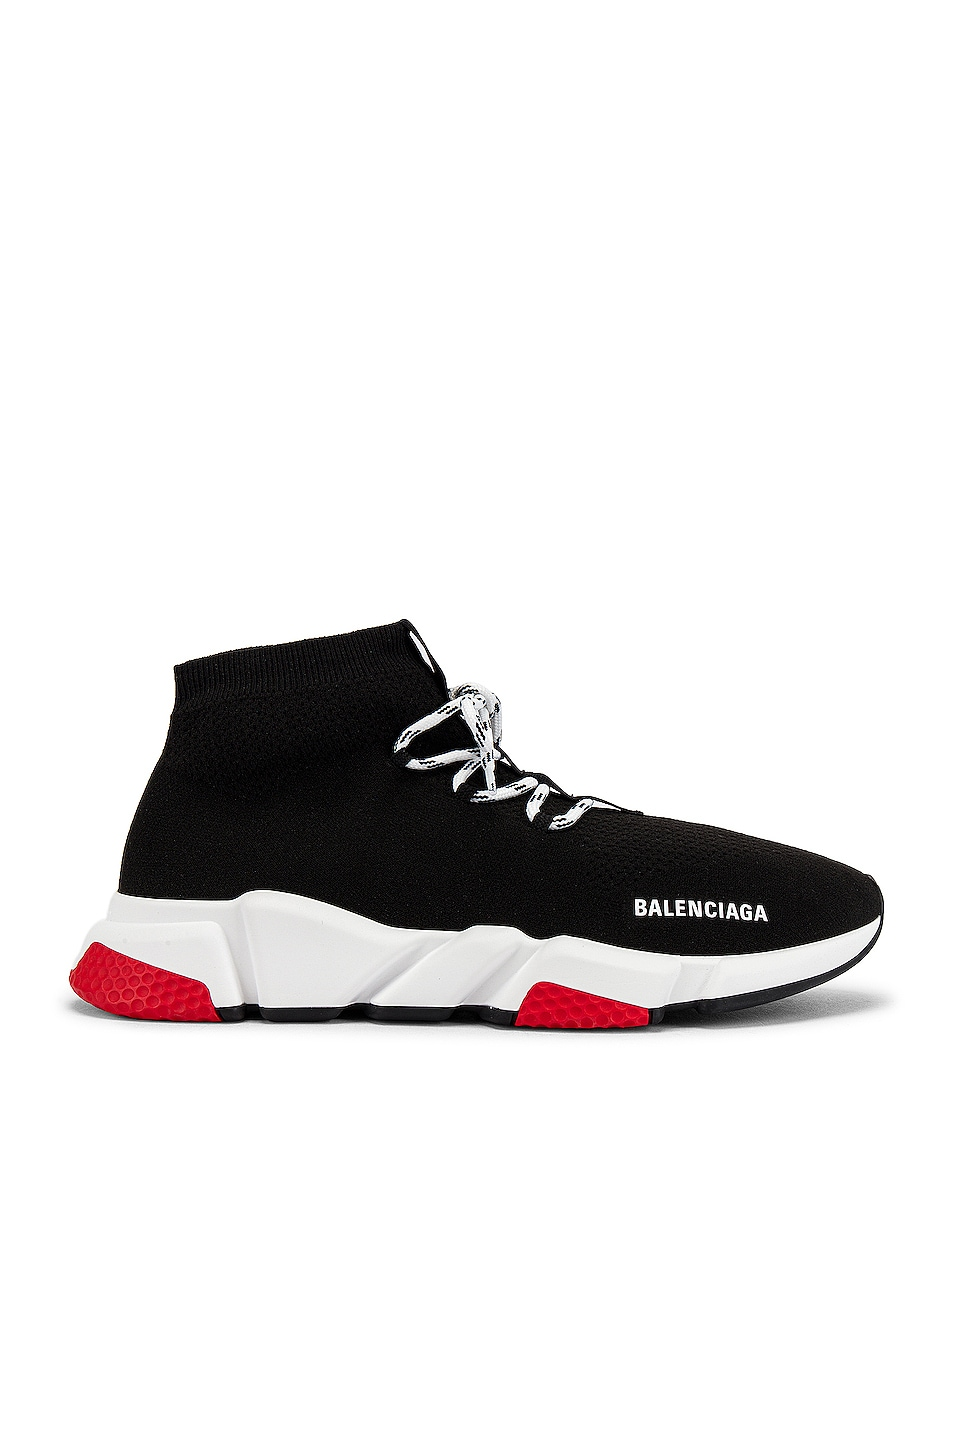 Image 2 of Balenciaga Speed Light Sneaker Lace Up in Black & White & Red & Black